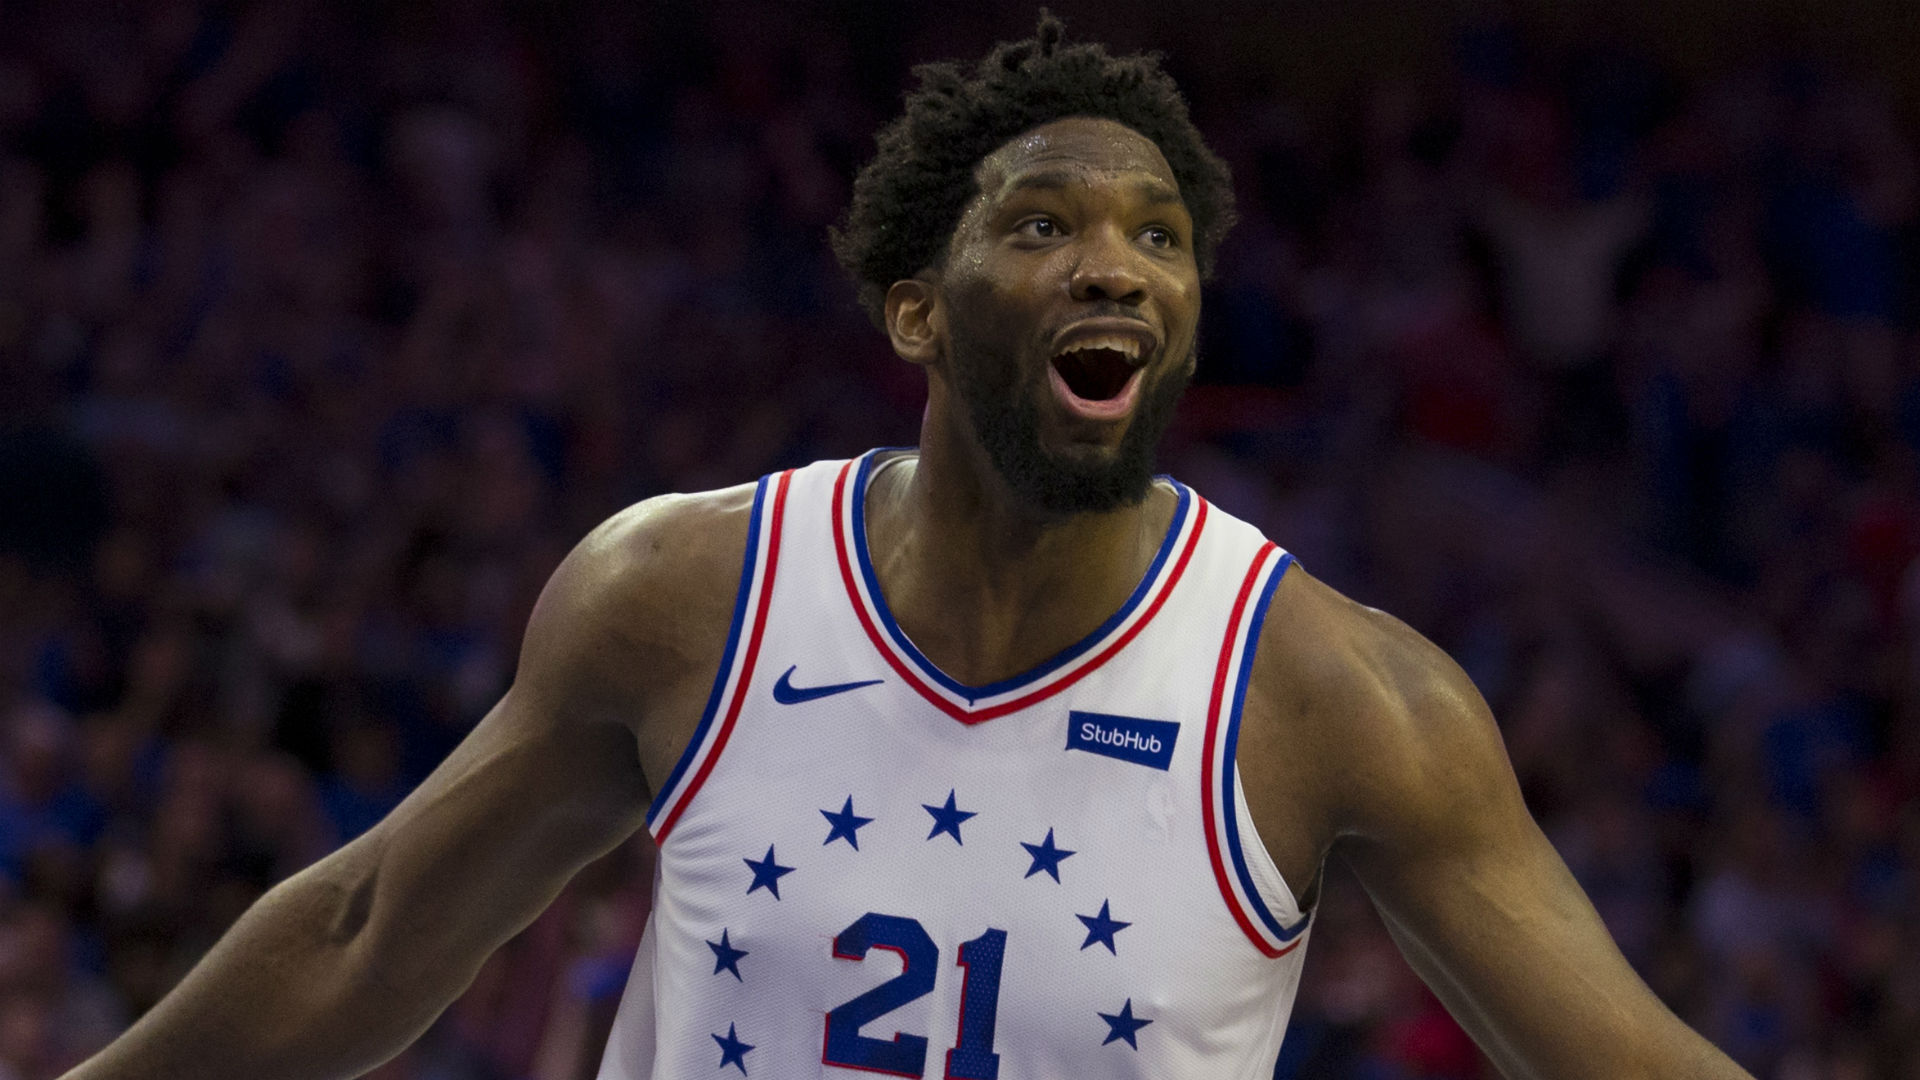 Brown lauds 'crown jewel' Embiid